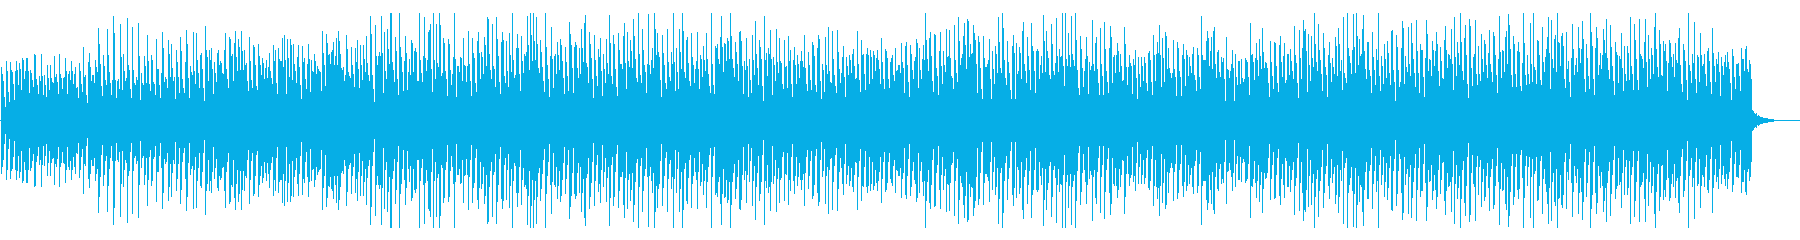 [Without Percussion] Refreshing for news and news's reproduced waveform